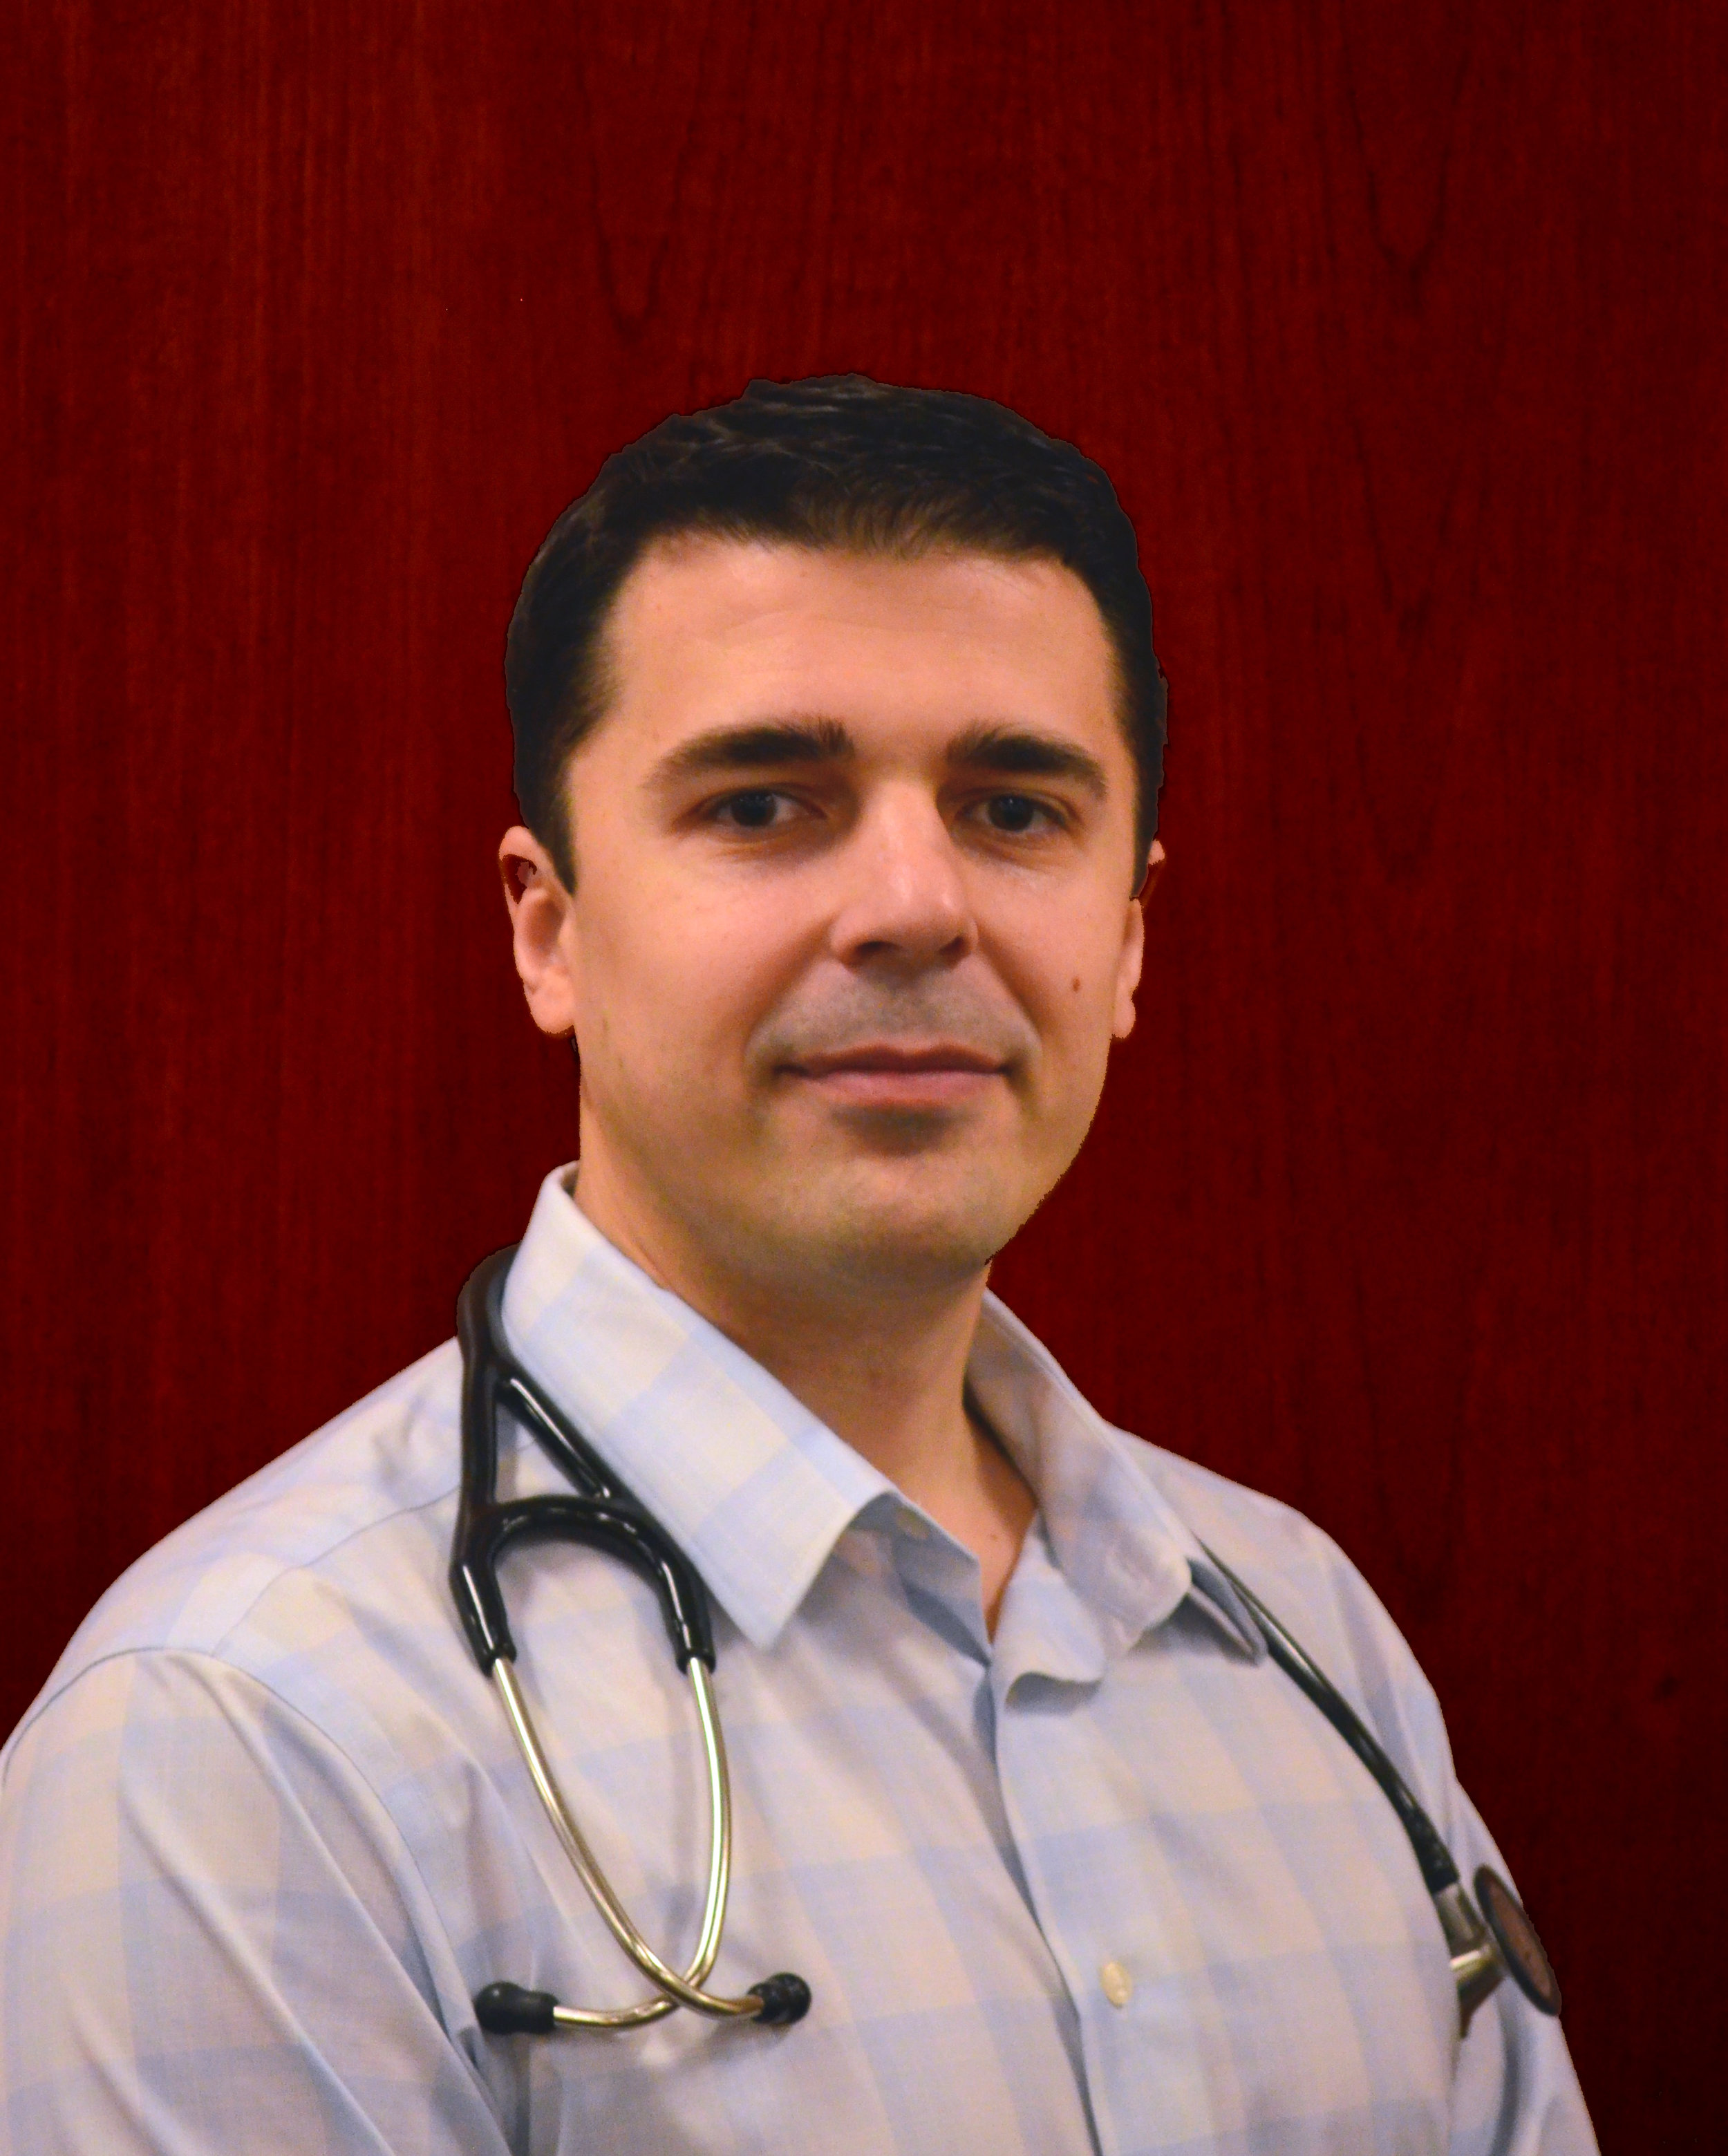 Dr. Andrei Chirpac